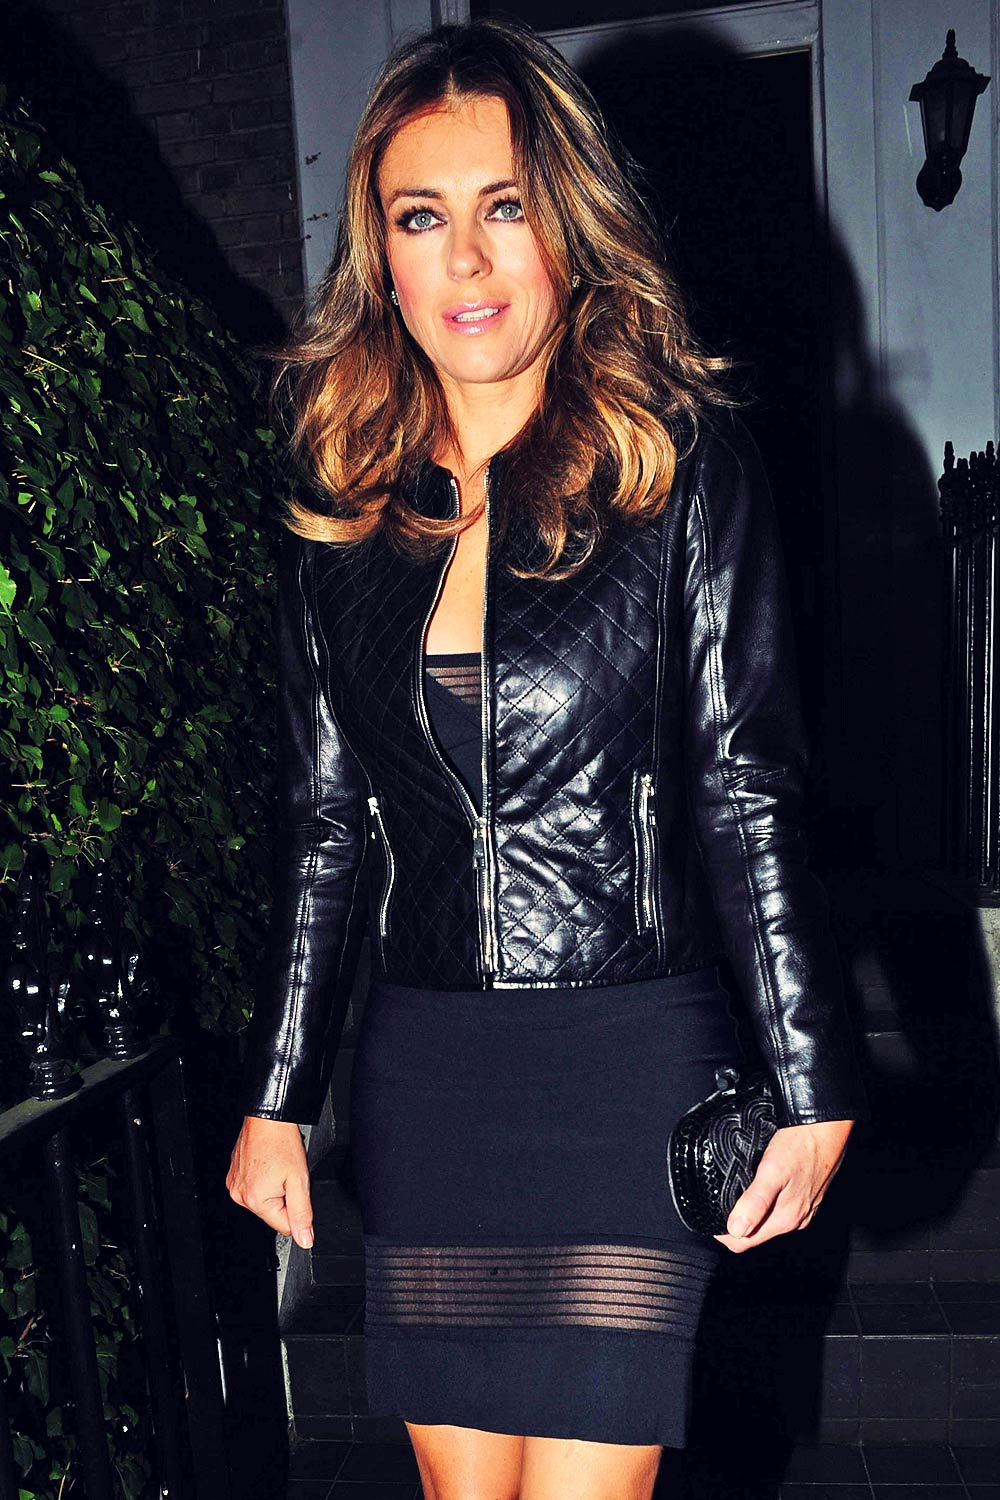 Liz Hurley spotted Night Out at Scott's Restaurant